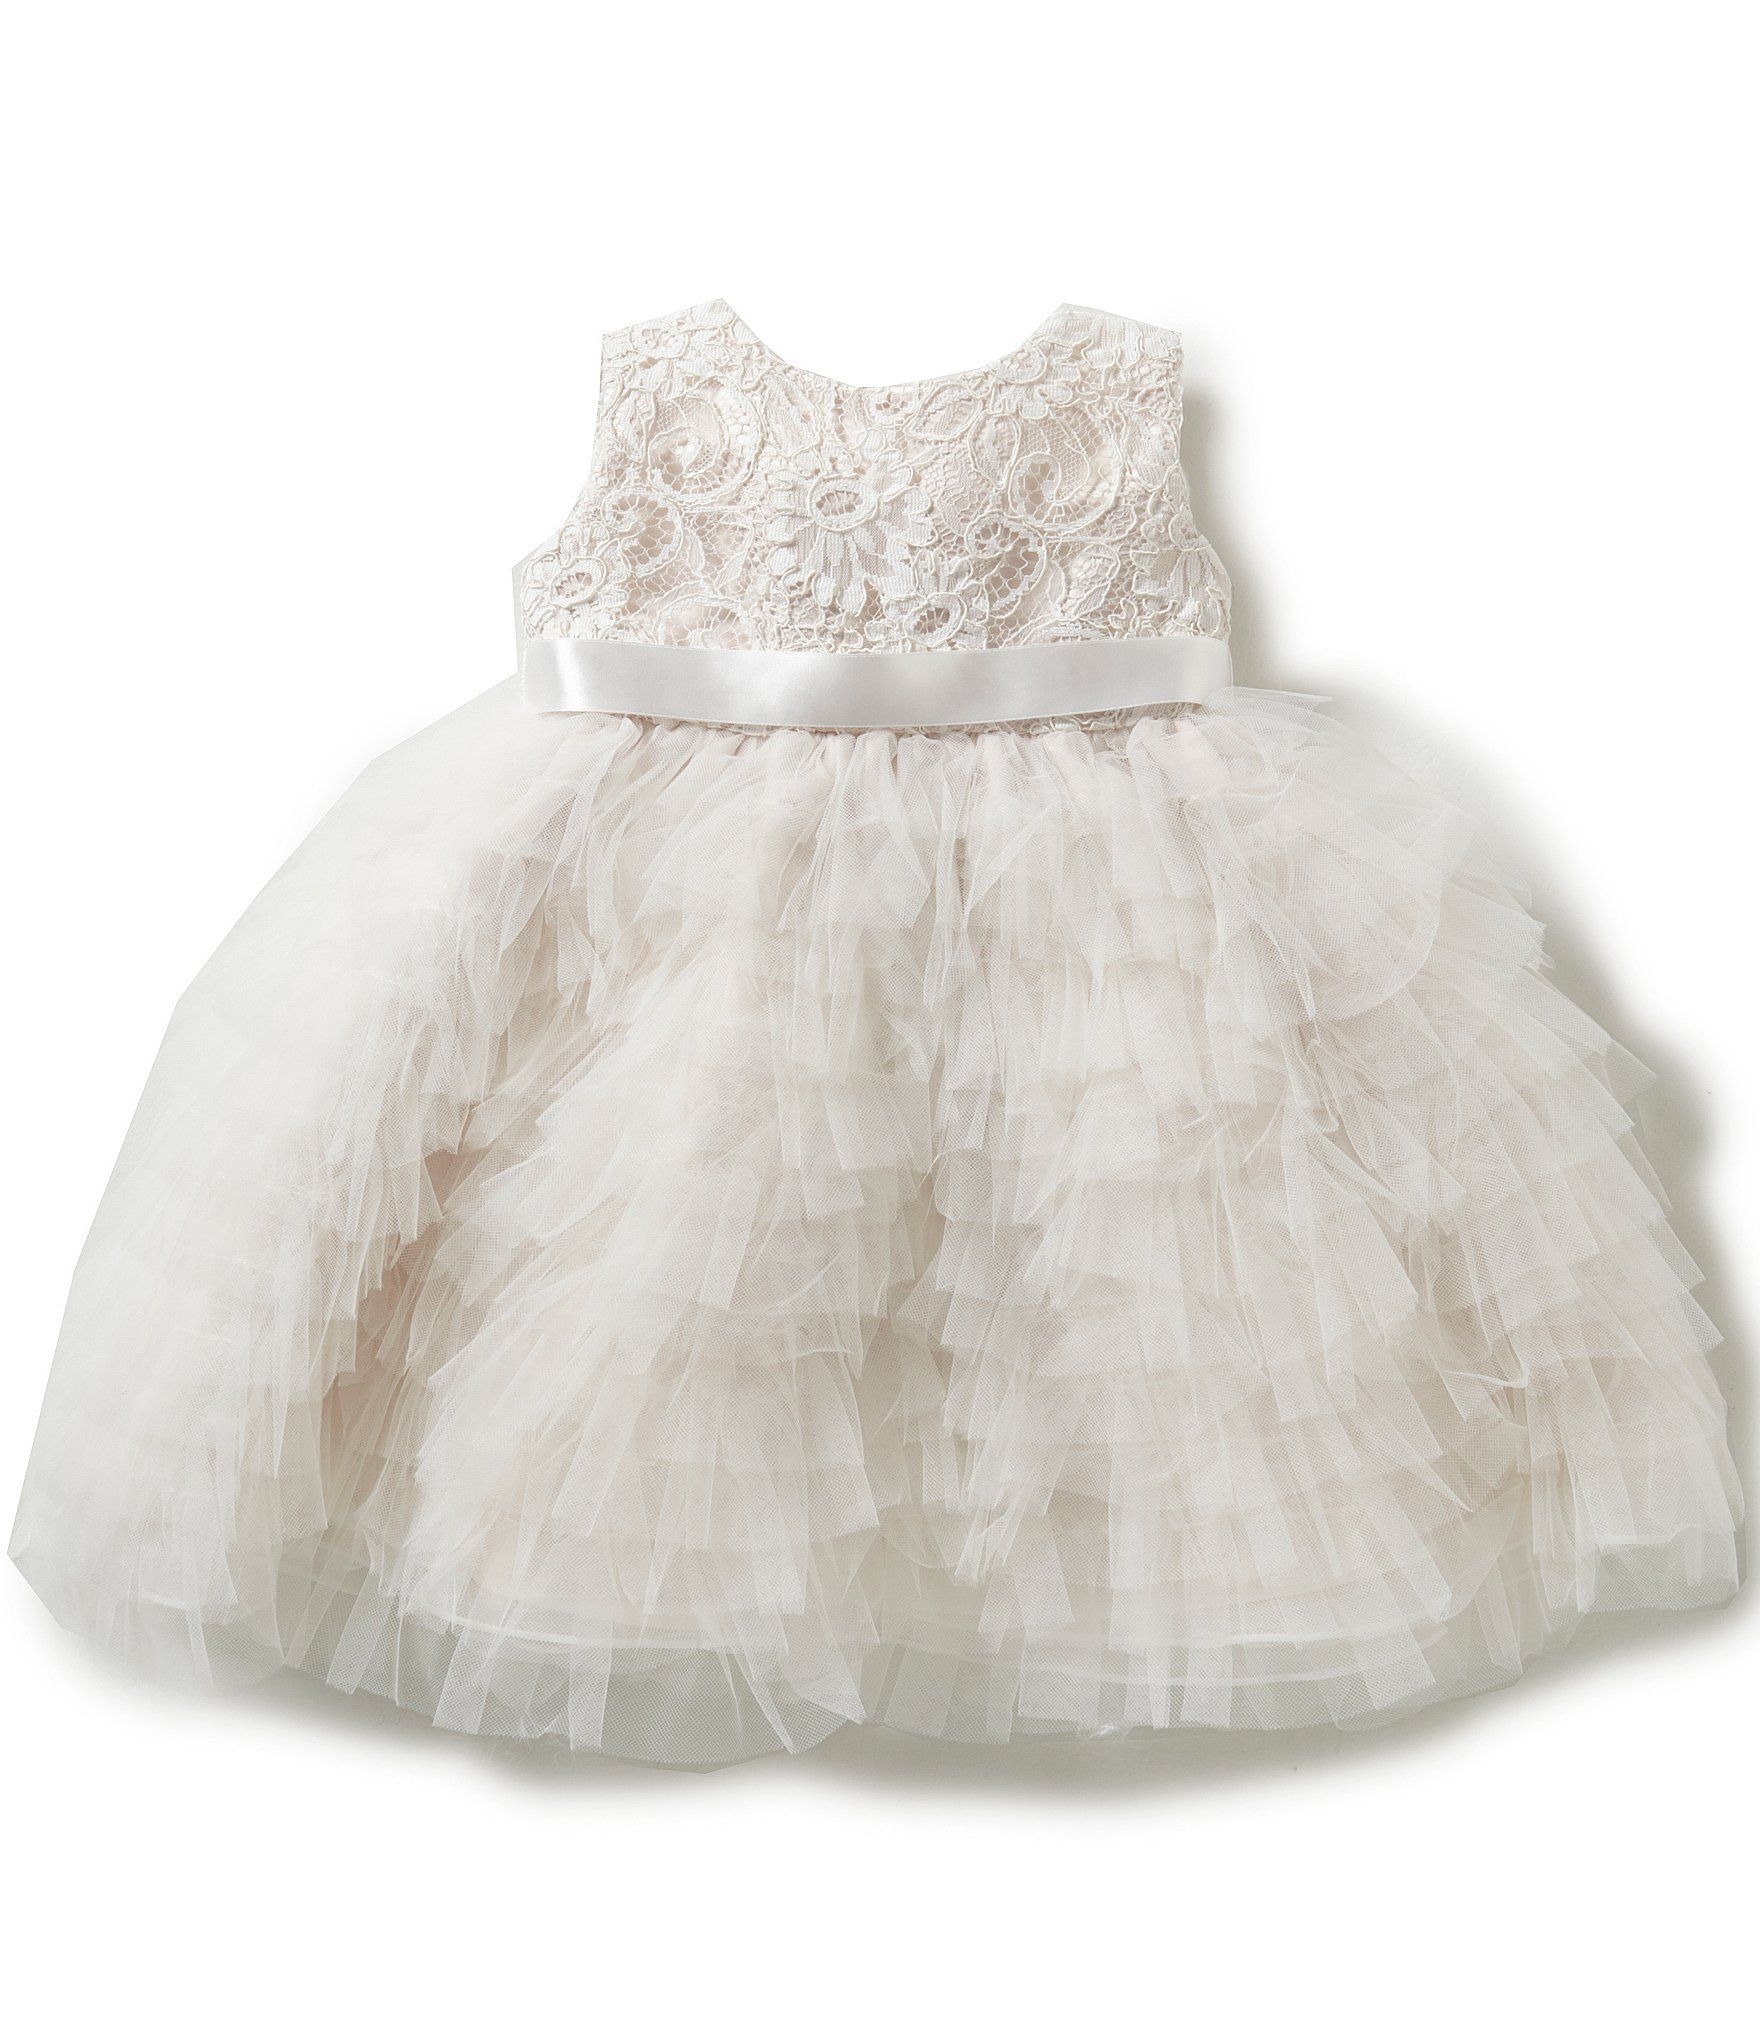 d510f4f56 Joan Calabrese Baby Girls 624 Months EmbroideredLace Ruffle Tulle ...